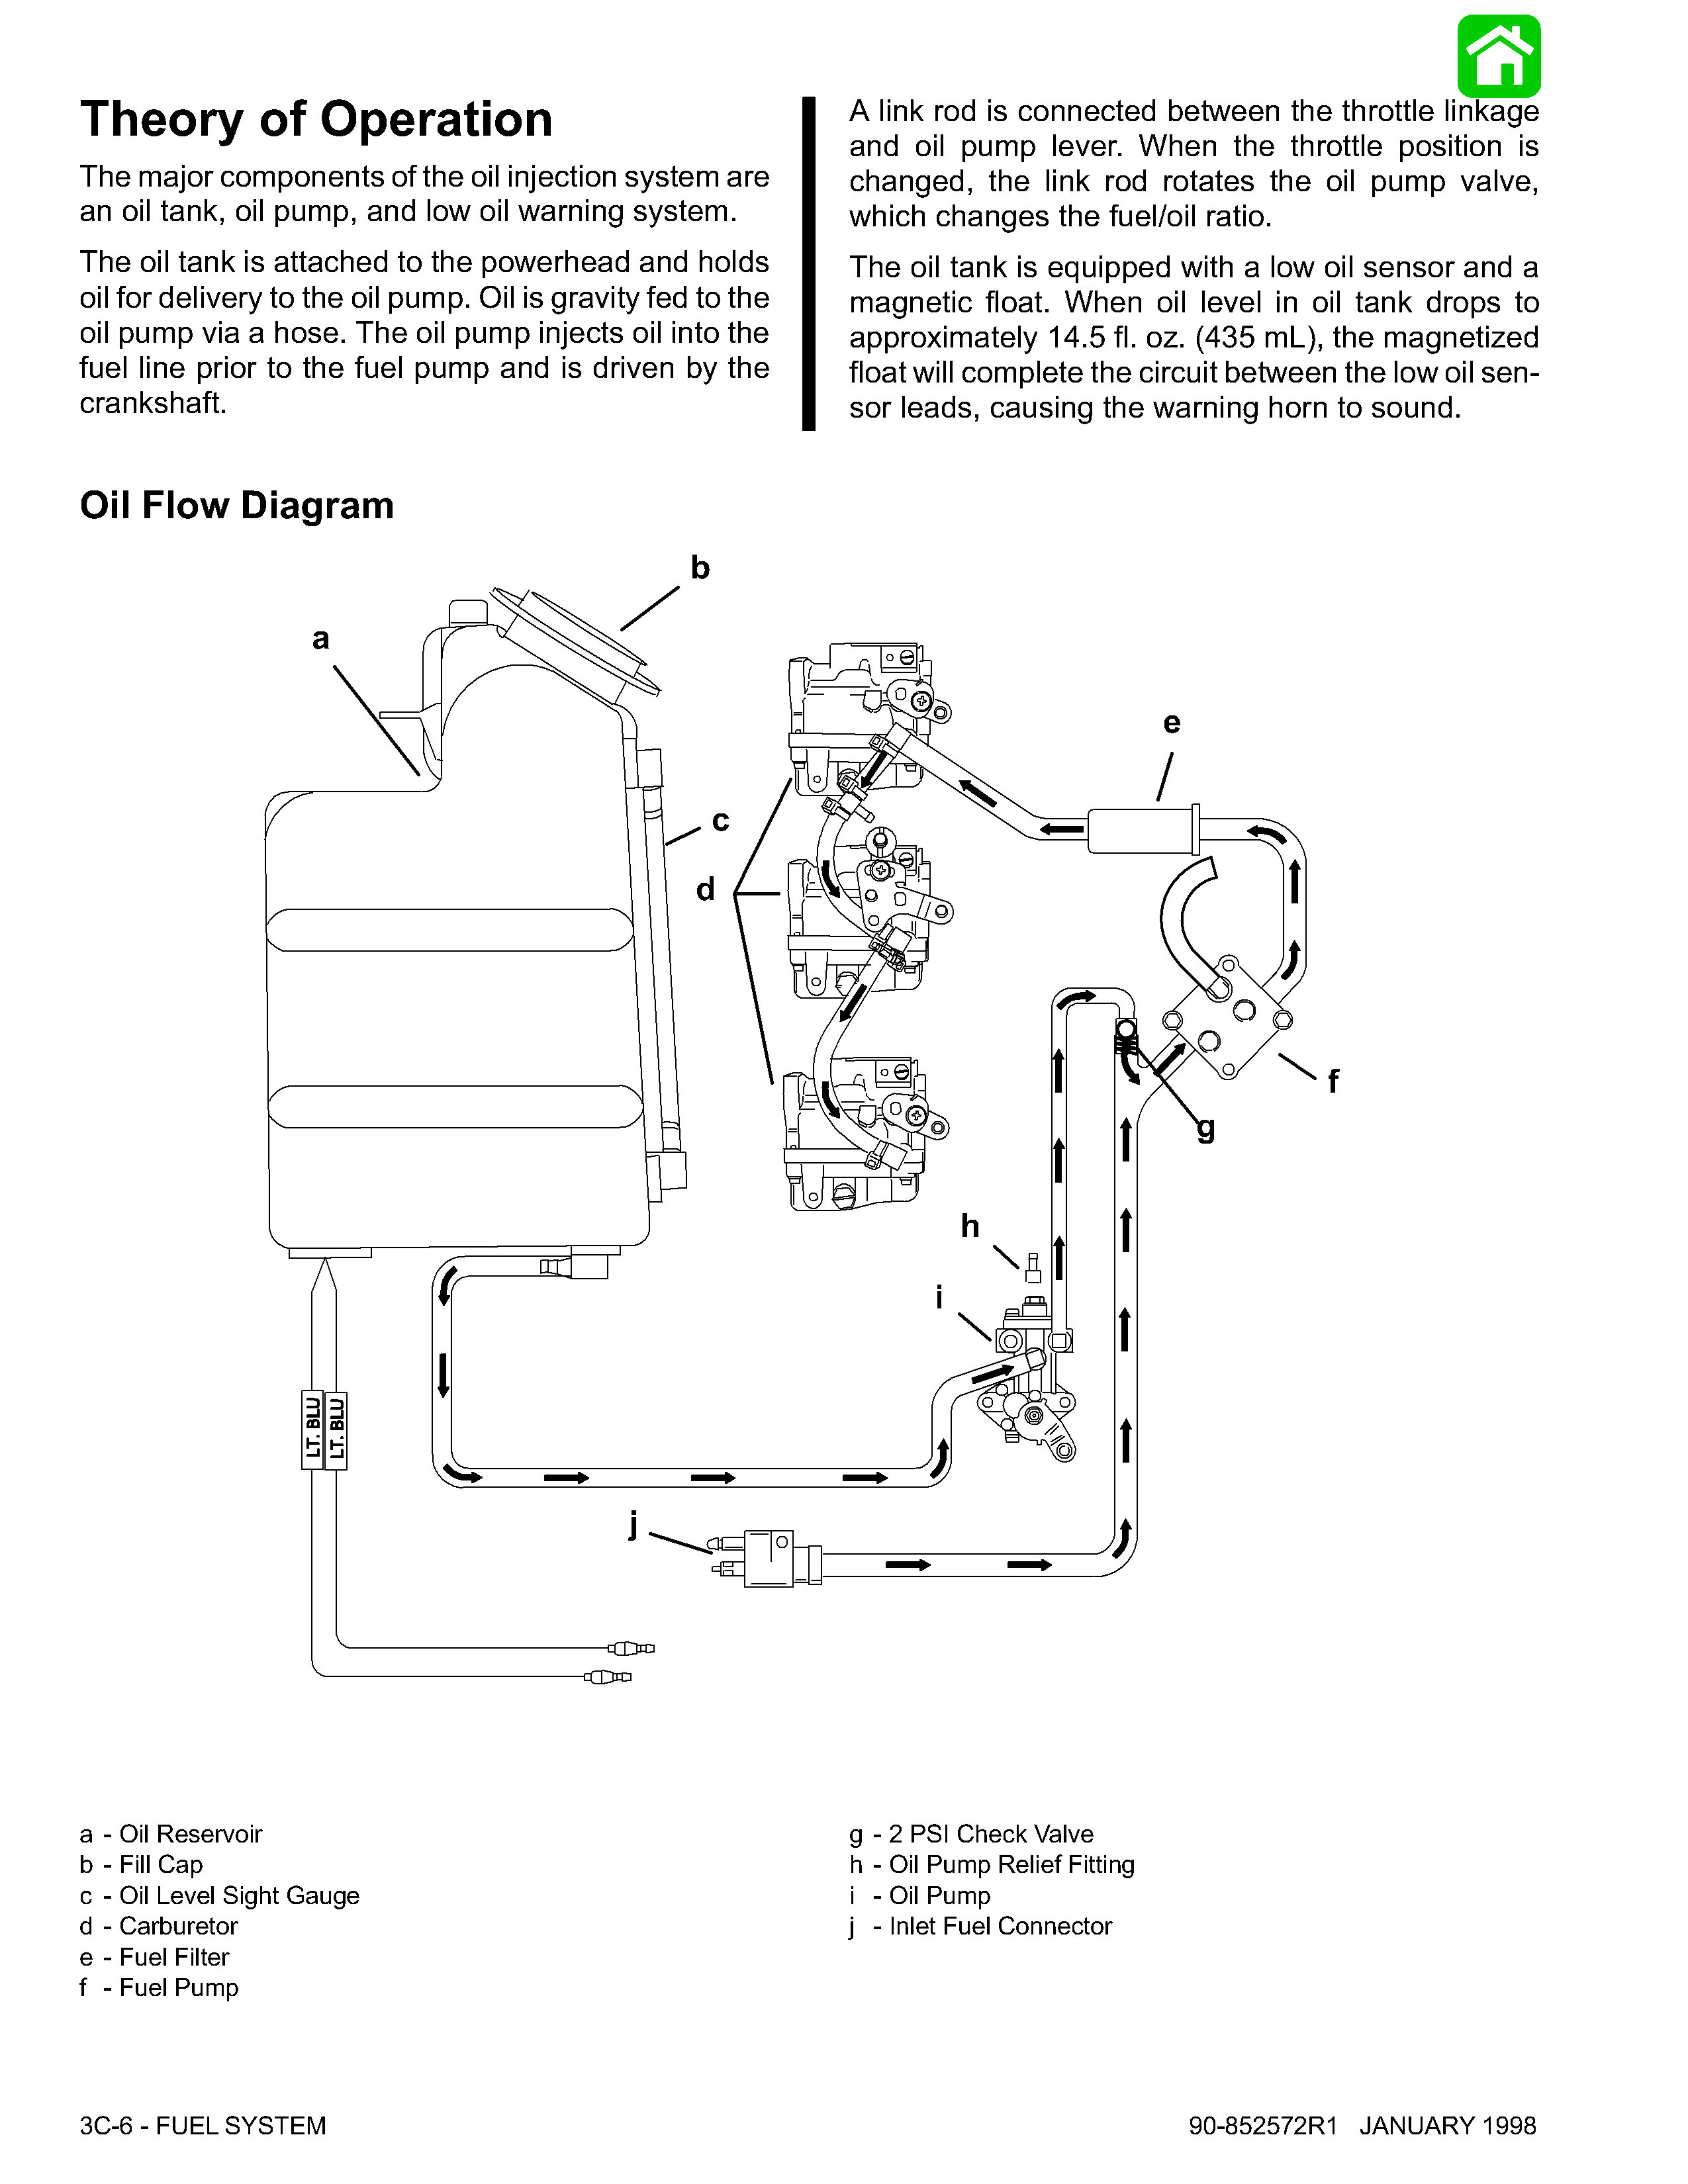 As you can see, there is only 1 output from the oil pump, and that goes  directly to the fuel line on the input side of the fuel pump, where it  mixes with ...